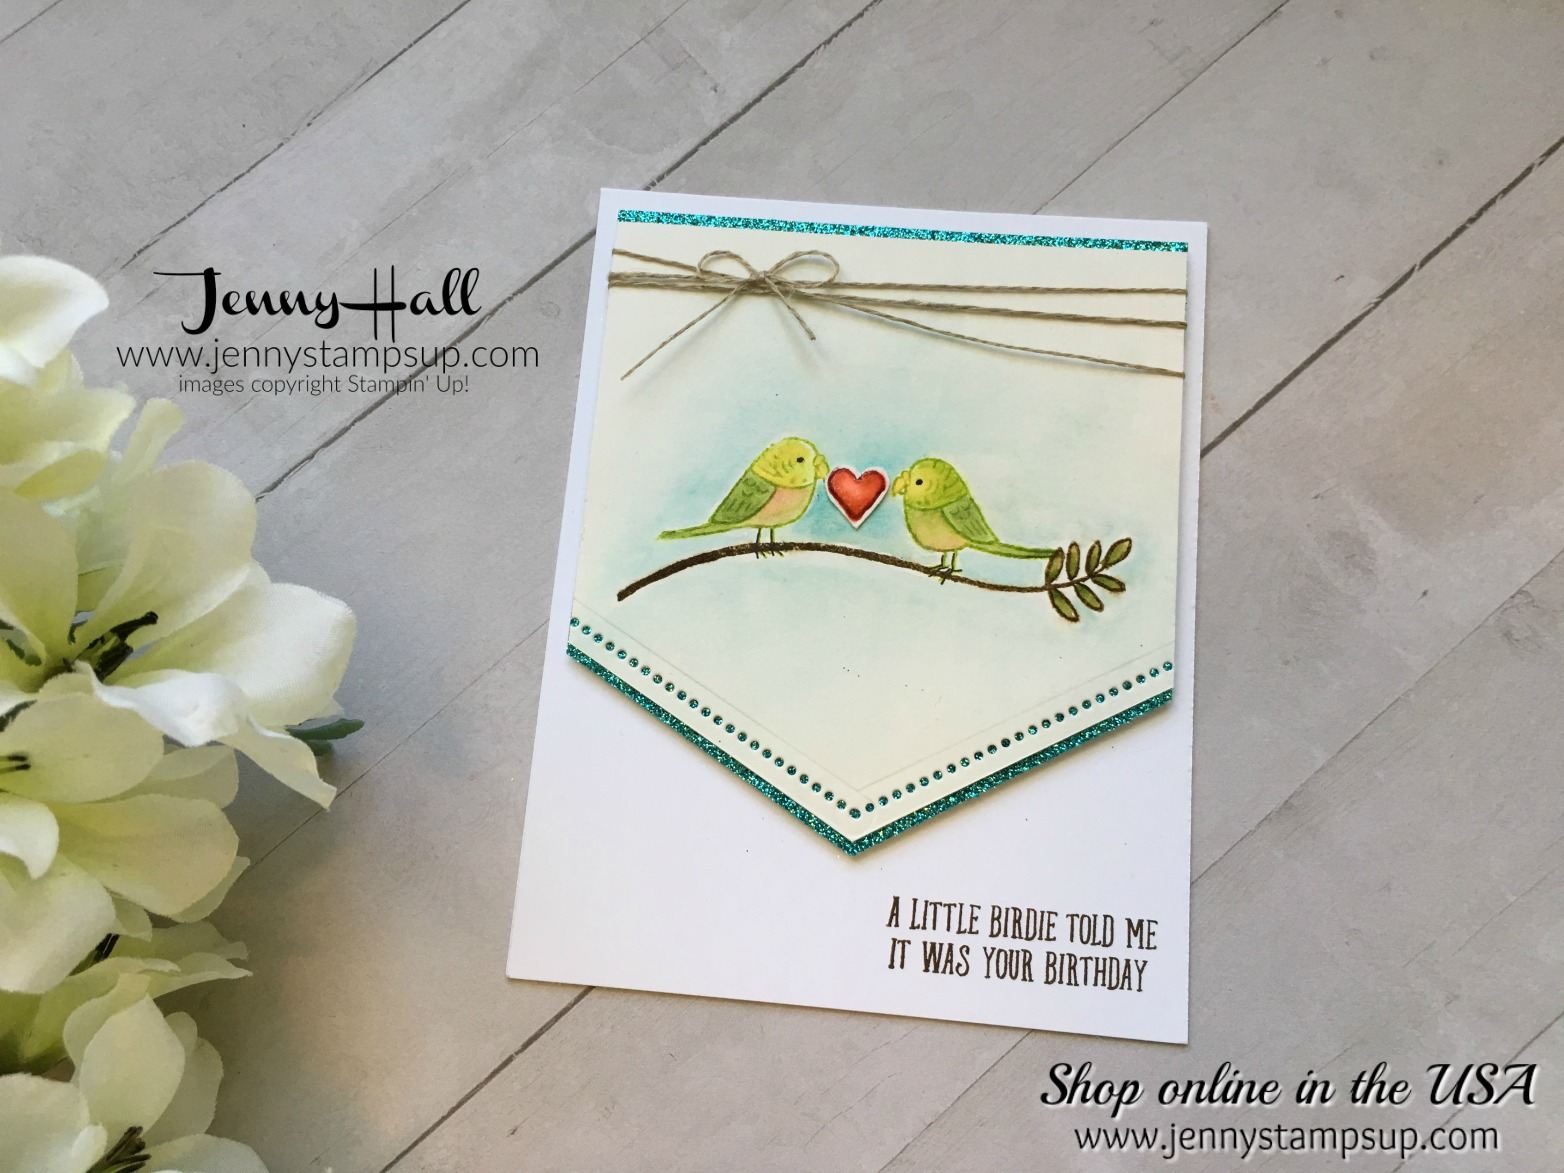 Bird Banter watercolor card by Jenny Hall at www.jennyhalldesign.com for cardmaking, video tutorials, scrapbooking and more!